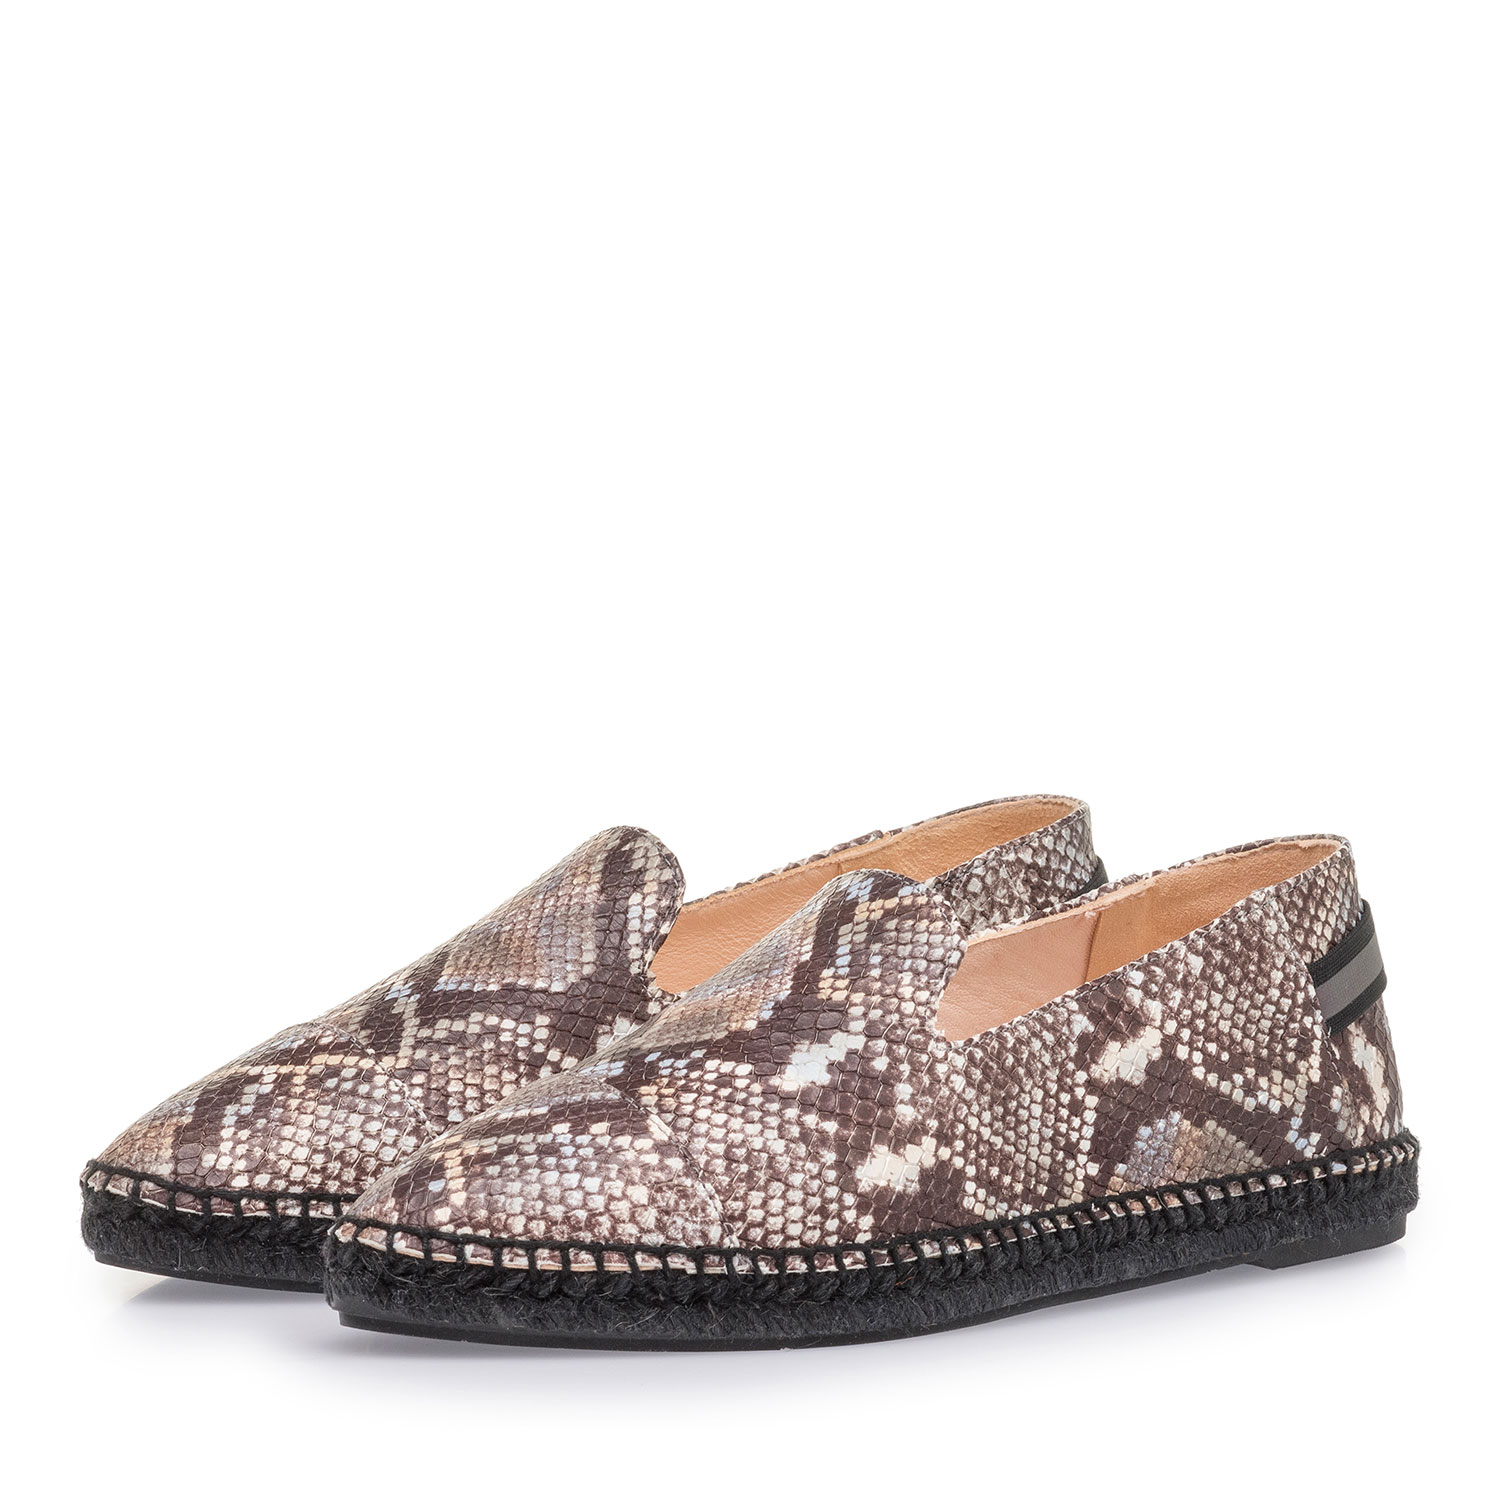 85420/07 - Brown and white leather espadrilles with snake print